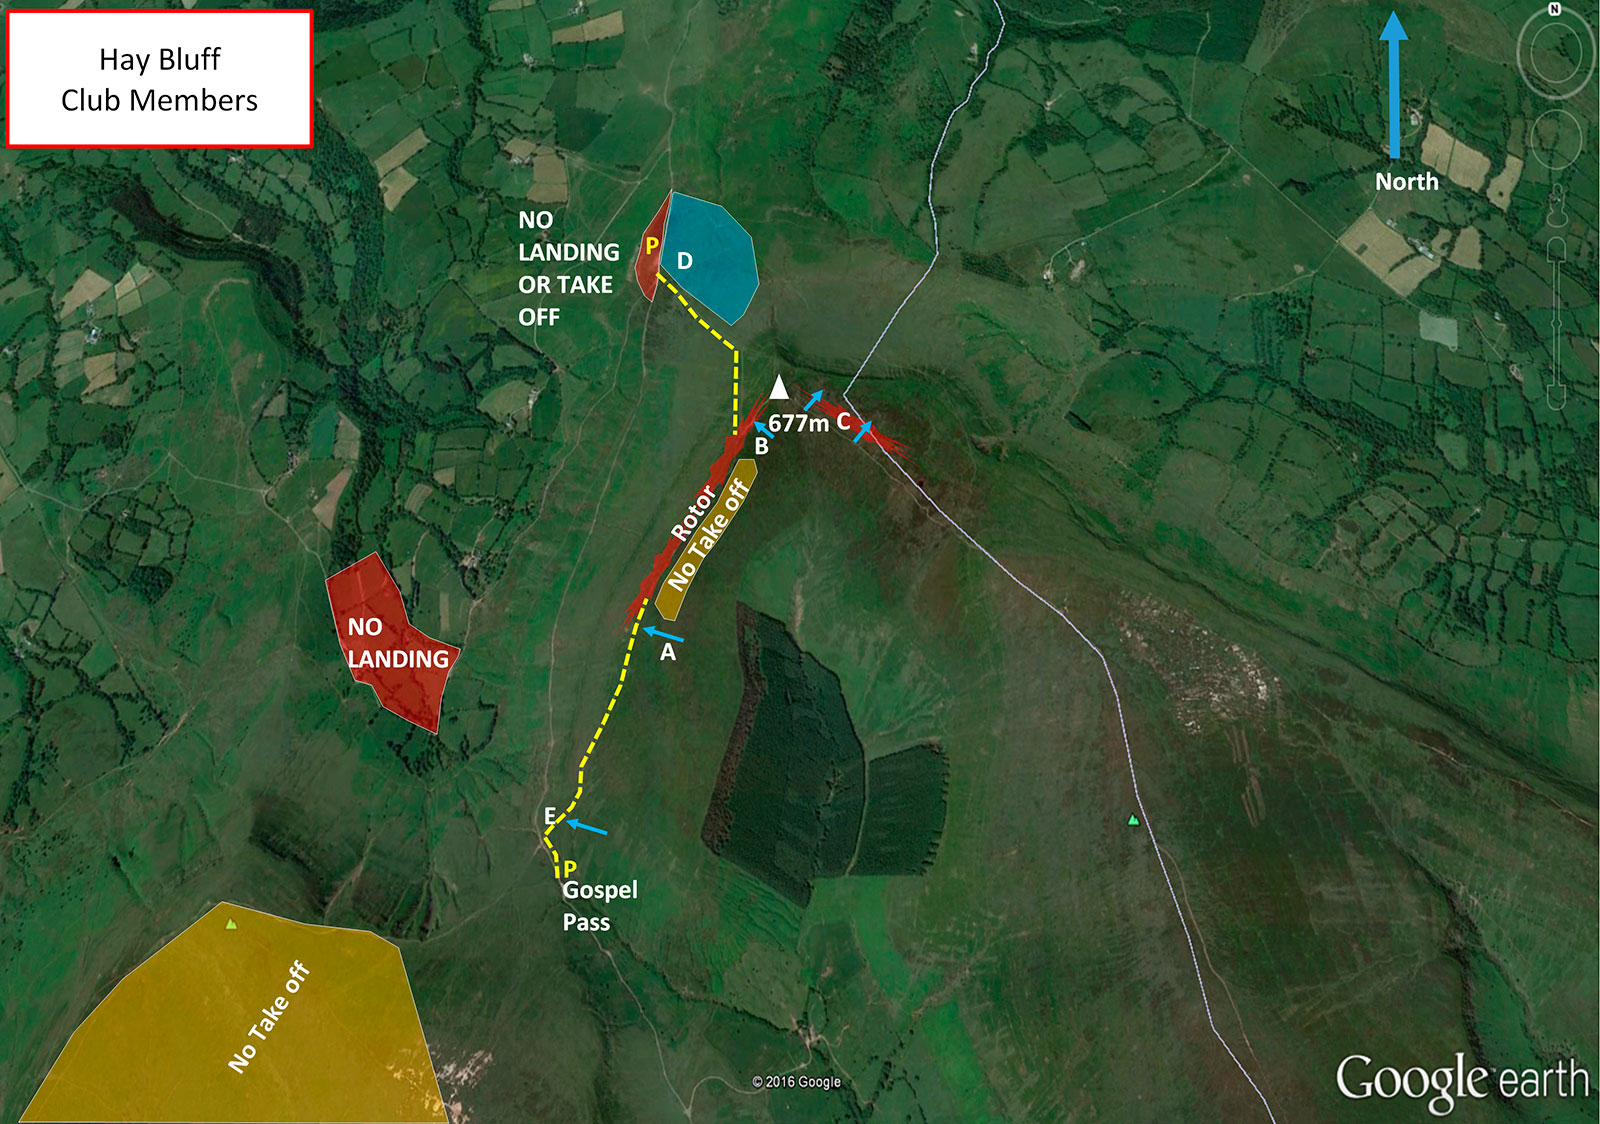 hay-bluff-site-image-map